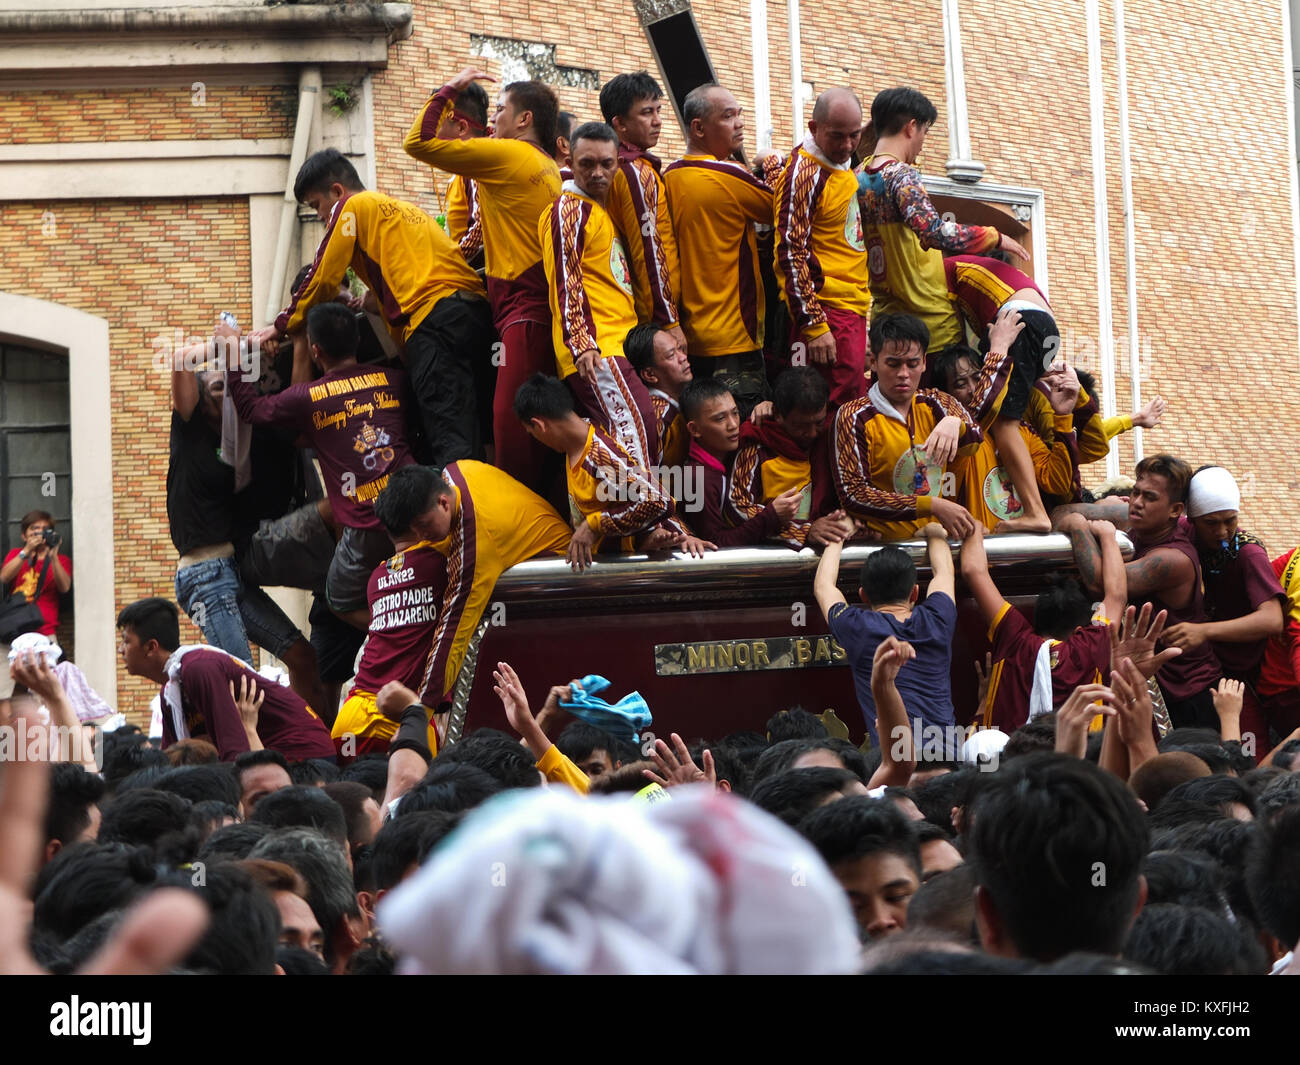 The Andas or carriage, carrying the black Nazarene slowly